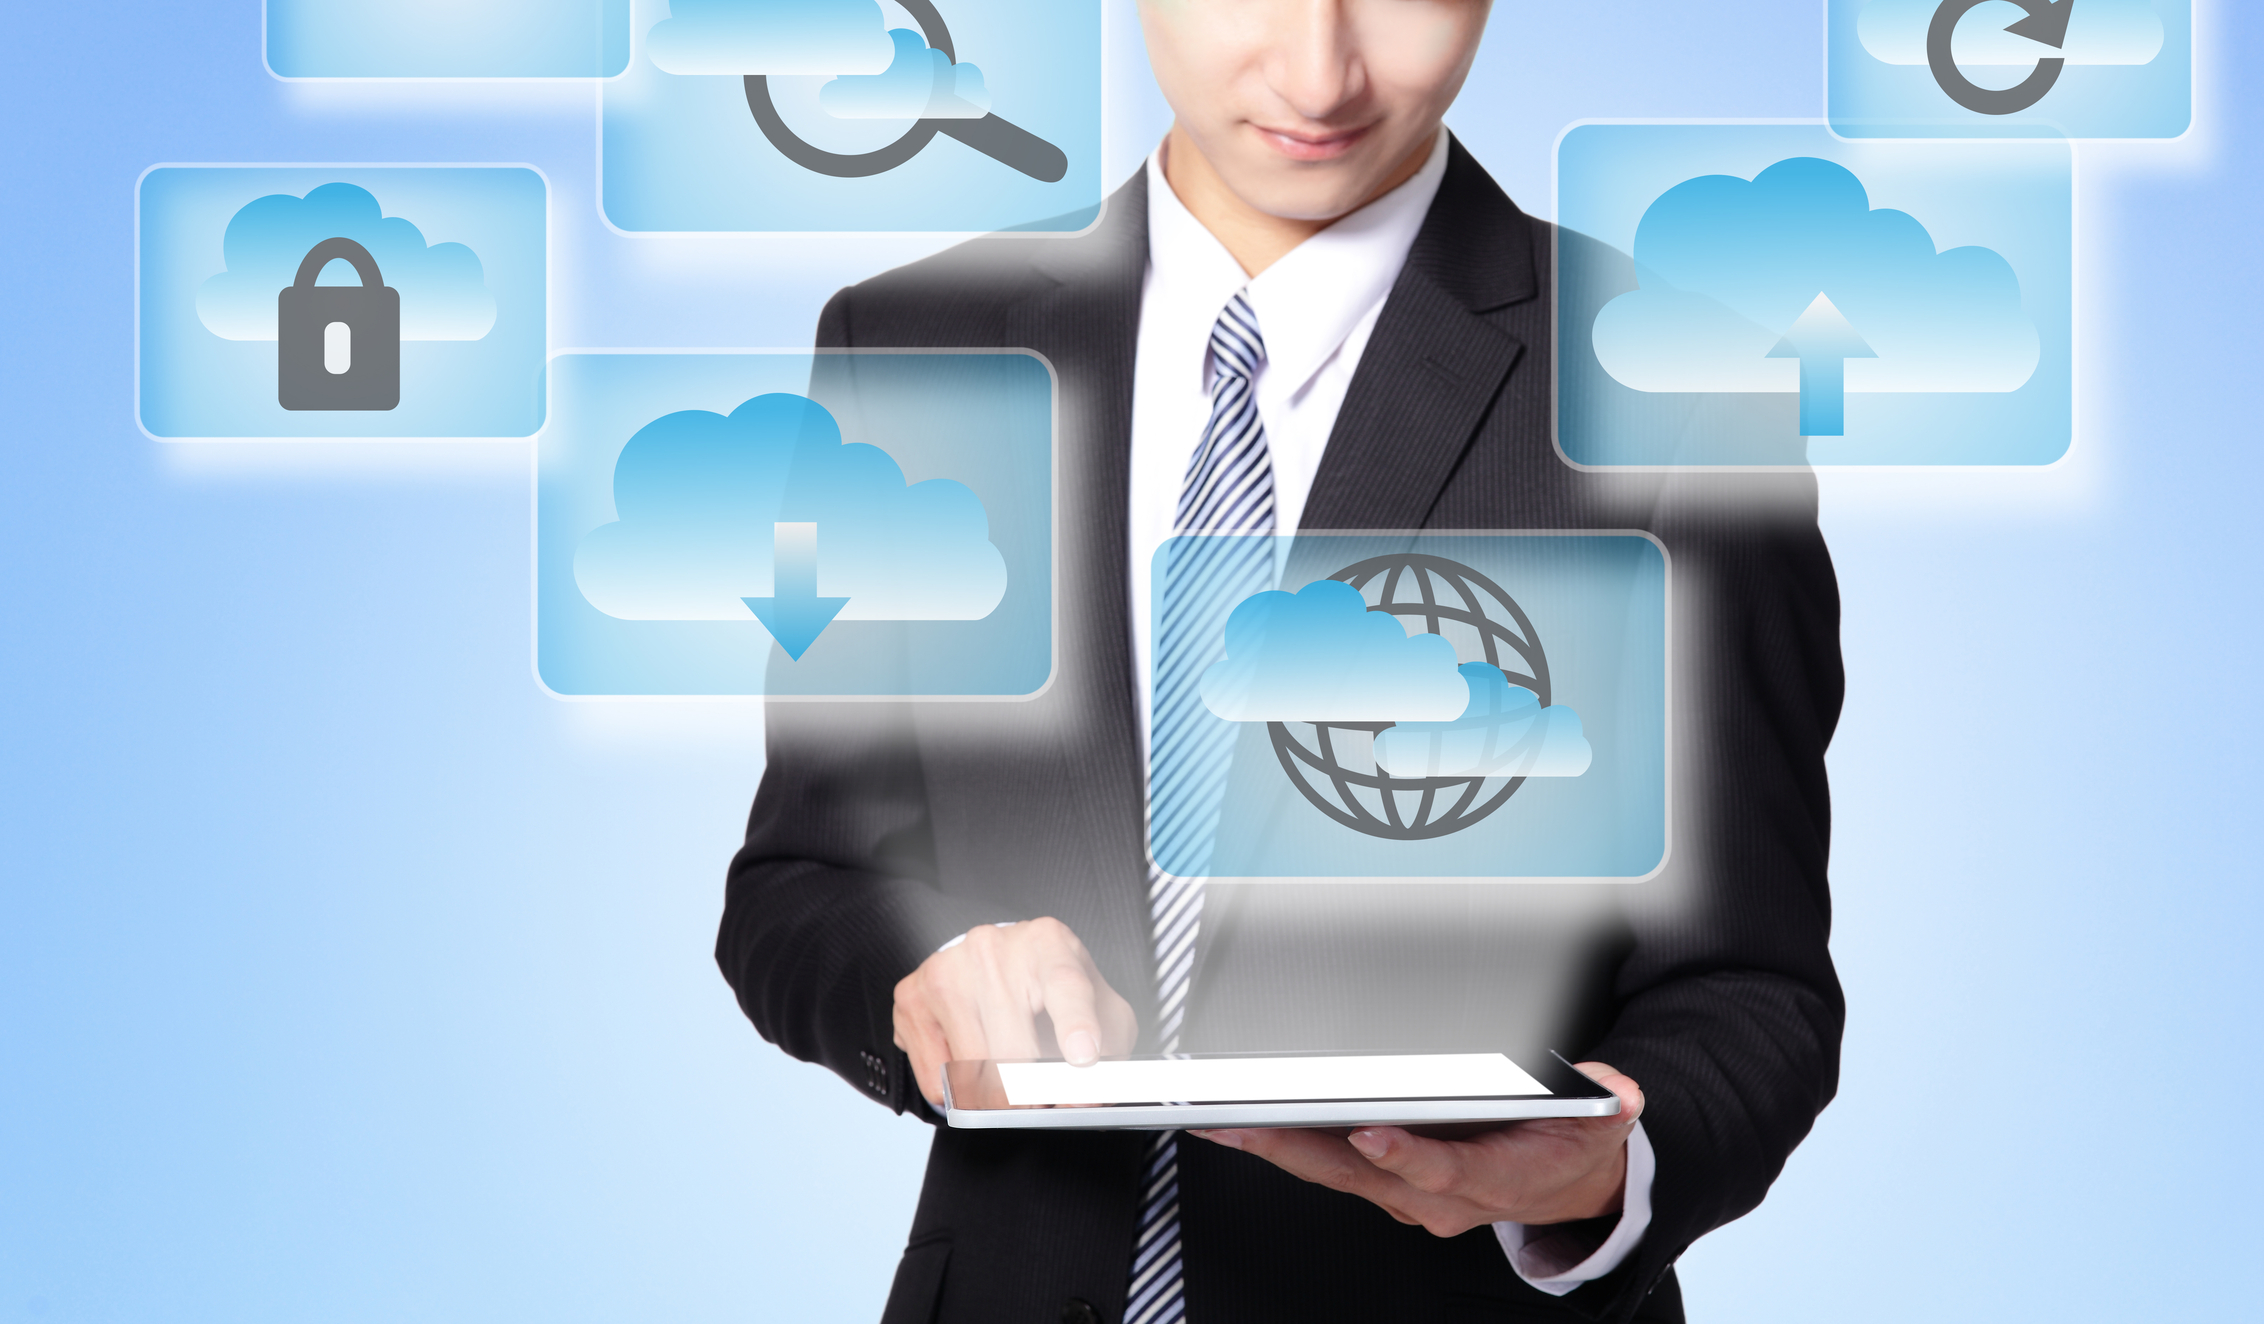 http://www.dreamstime.com/royalty-free-stock-images-cloud-computing-concept-image29602089